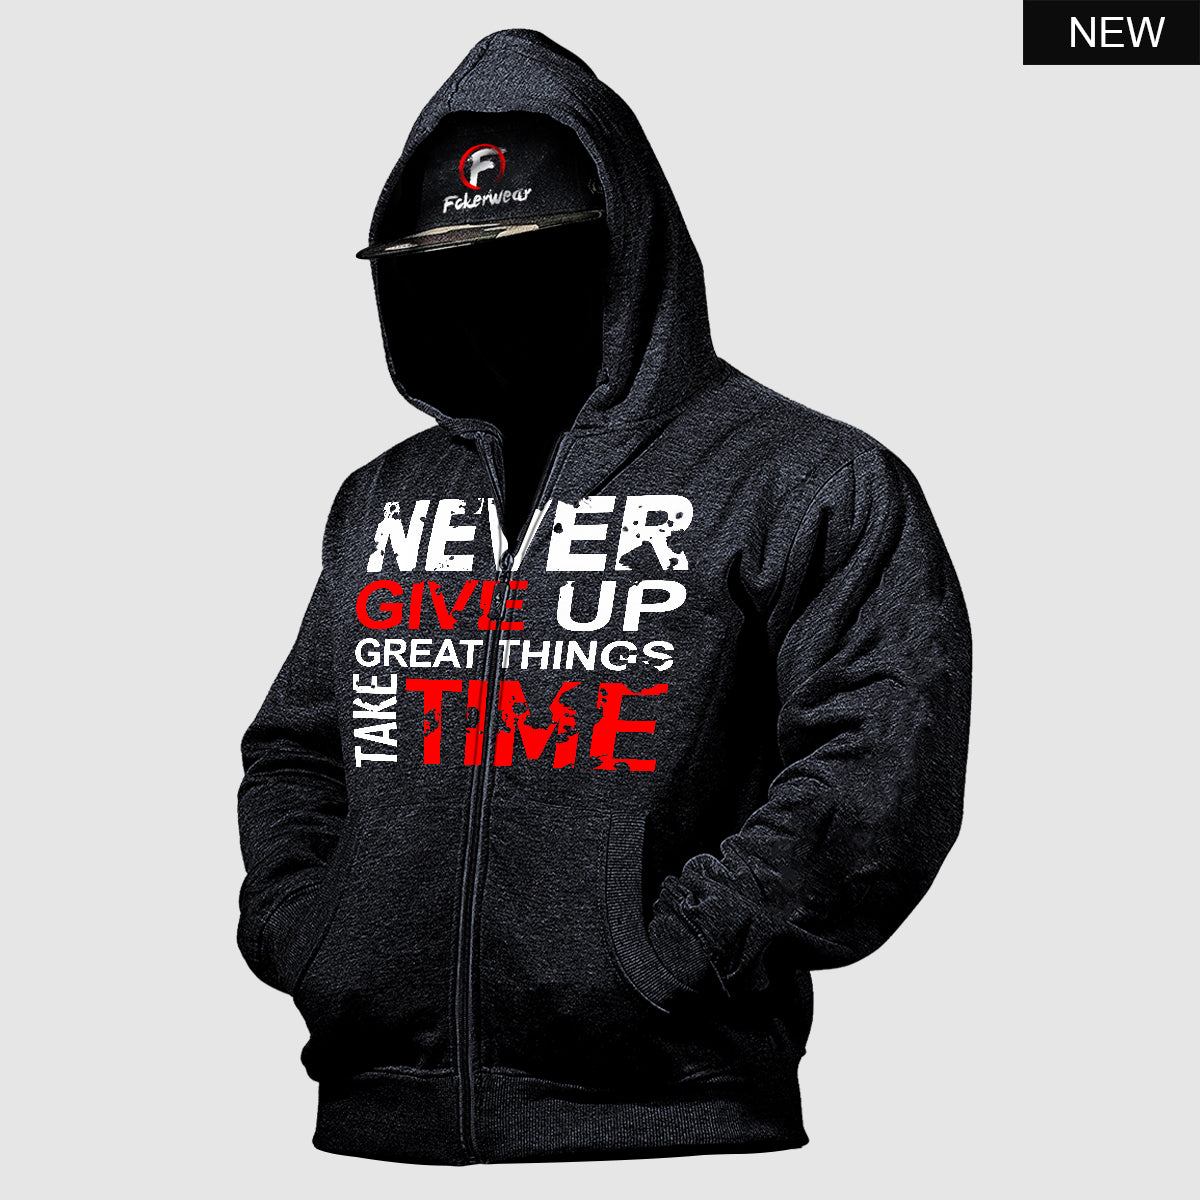 Never Give Up™ zip hoodie